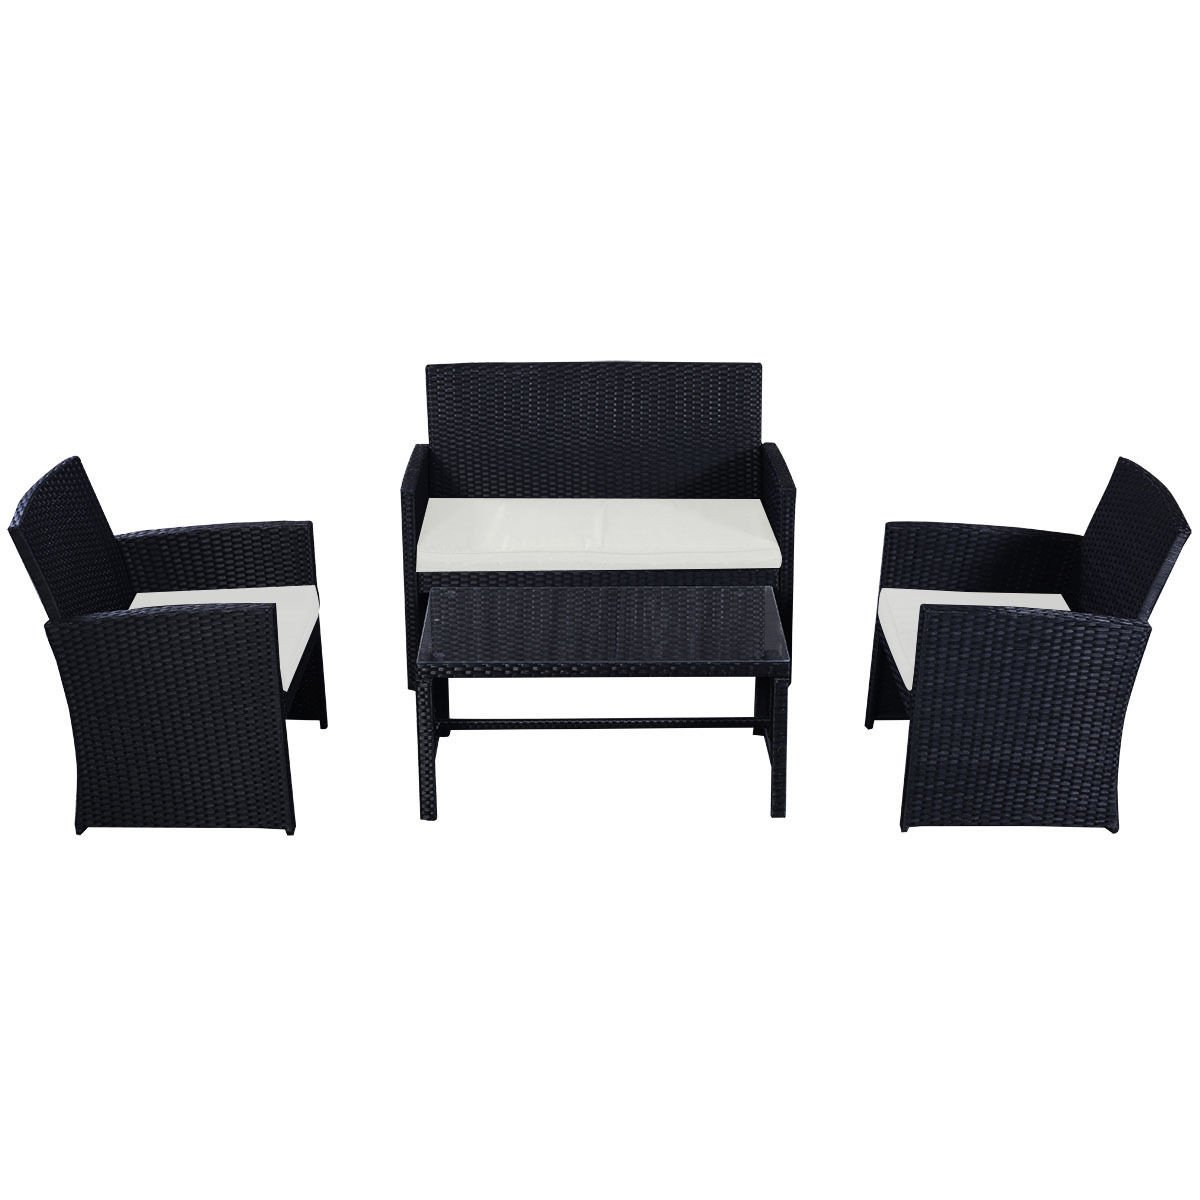 4 Piece Black Wicker Rattan Patio Set